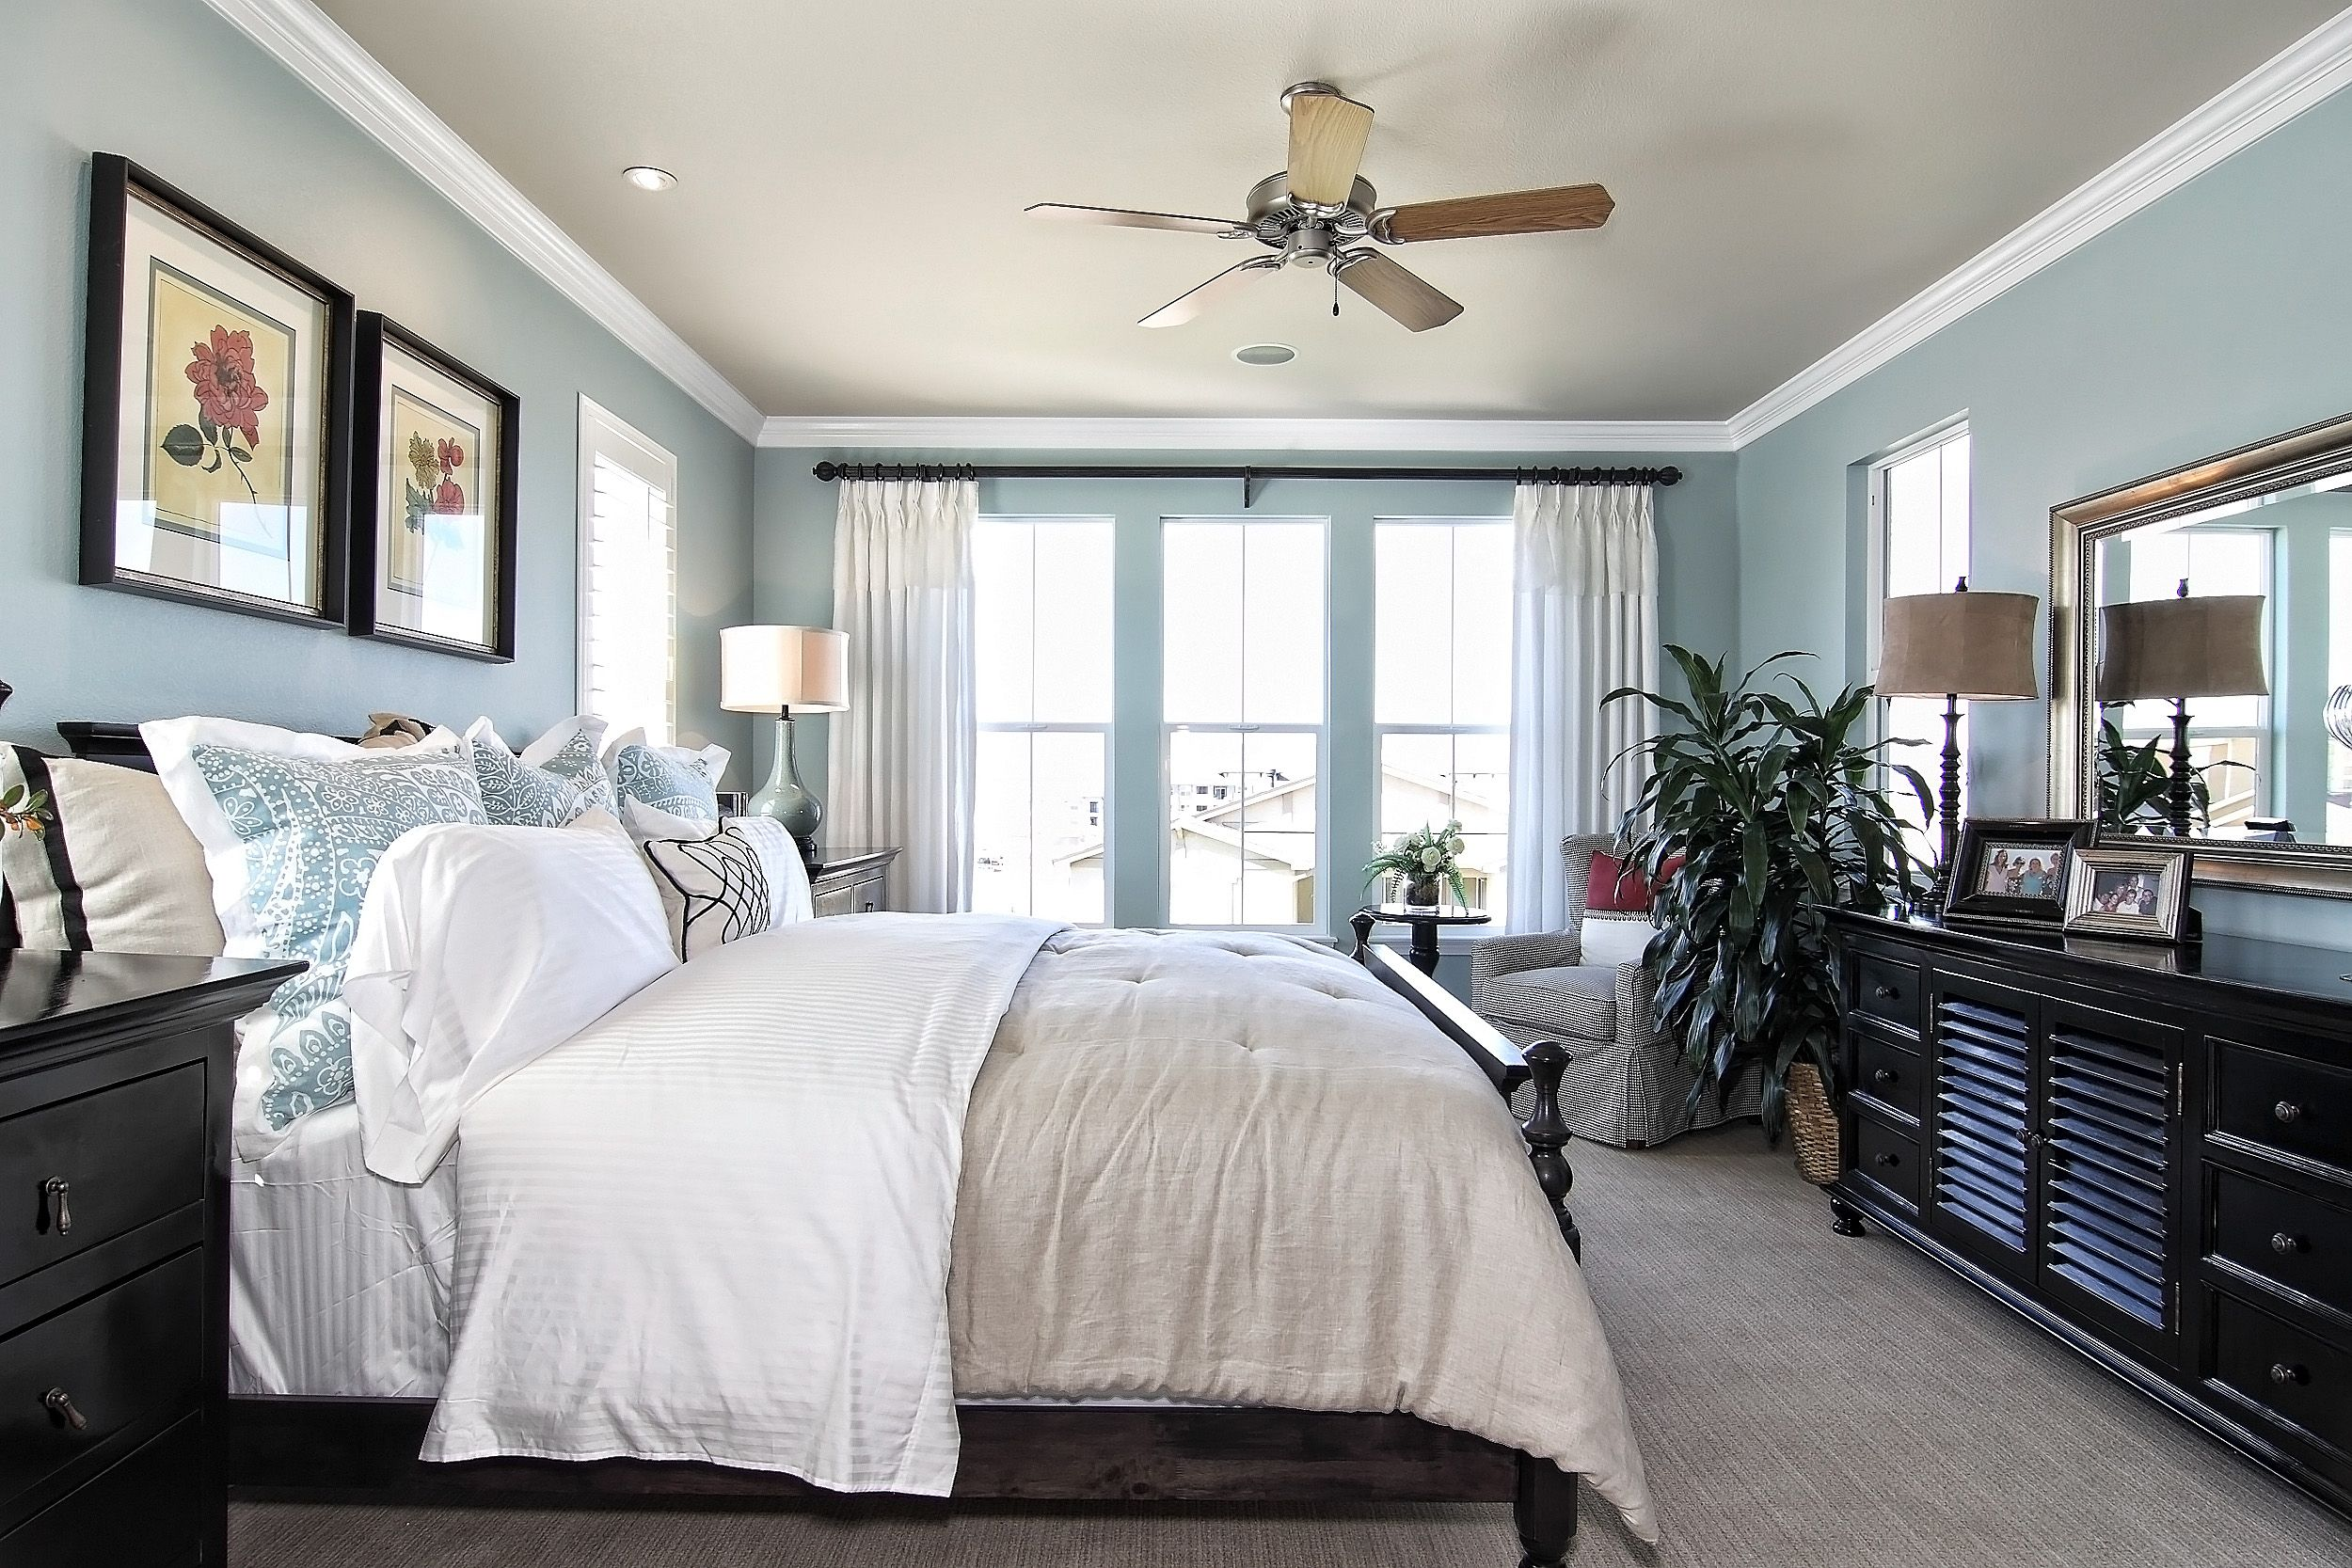 Master bedroom light blue white and black relaxing kellerhomes home bedroom Master bedroom light blue walls